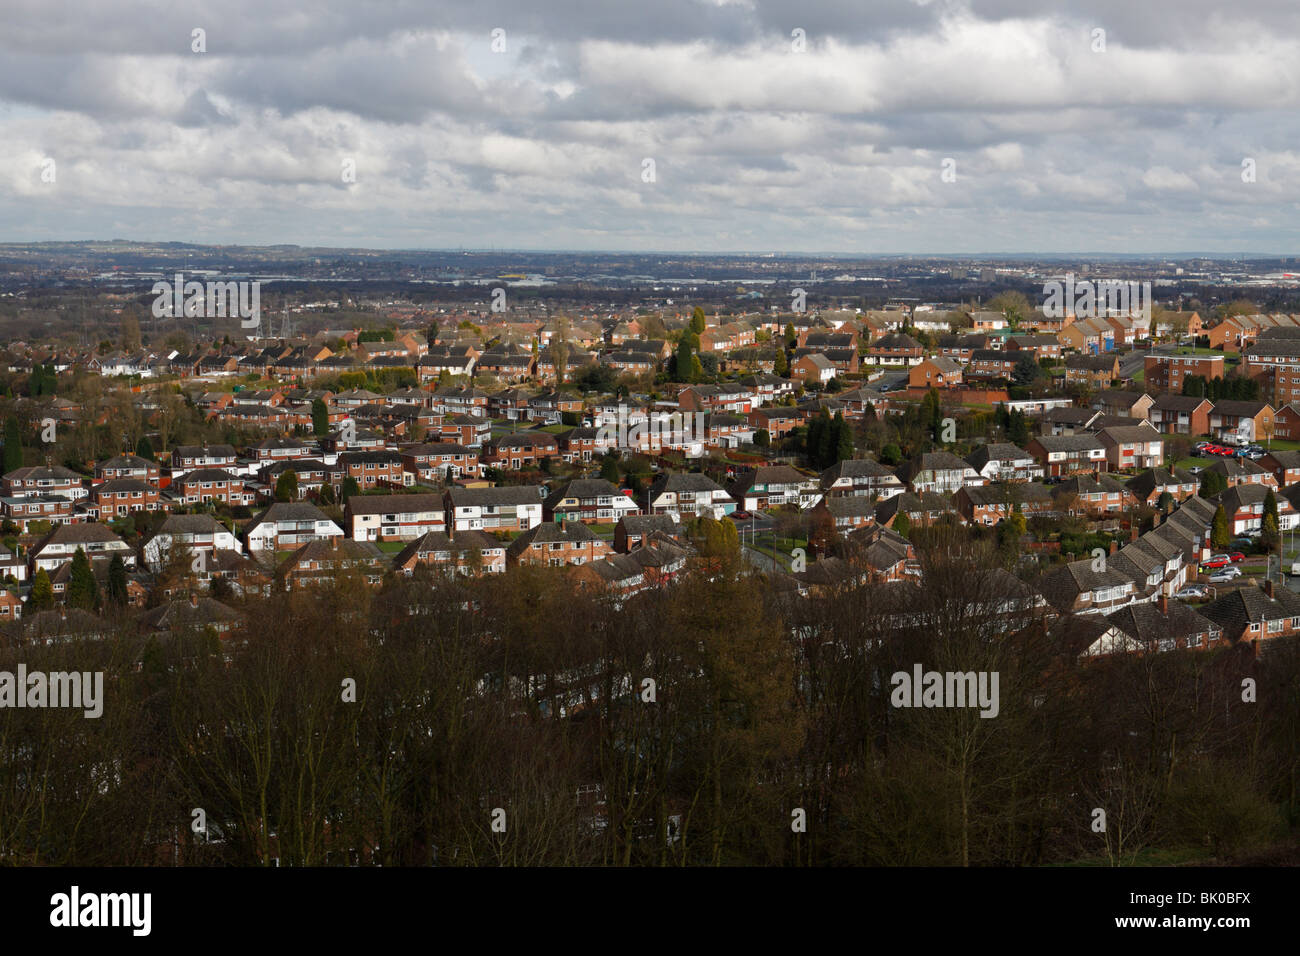 A view over Sedgley and surrounding towns in the Black Country (English West Midlands) showing expansive housing - Stock Image